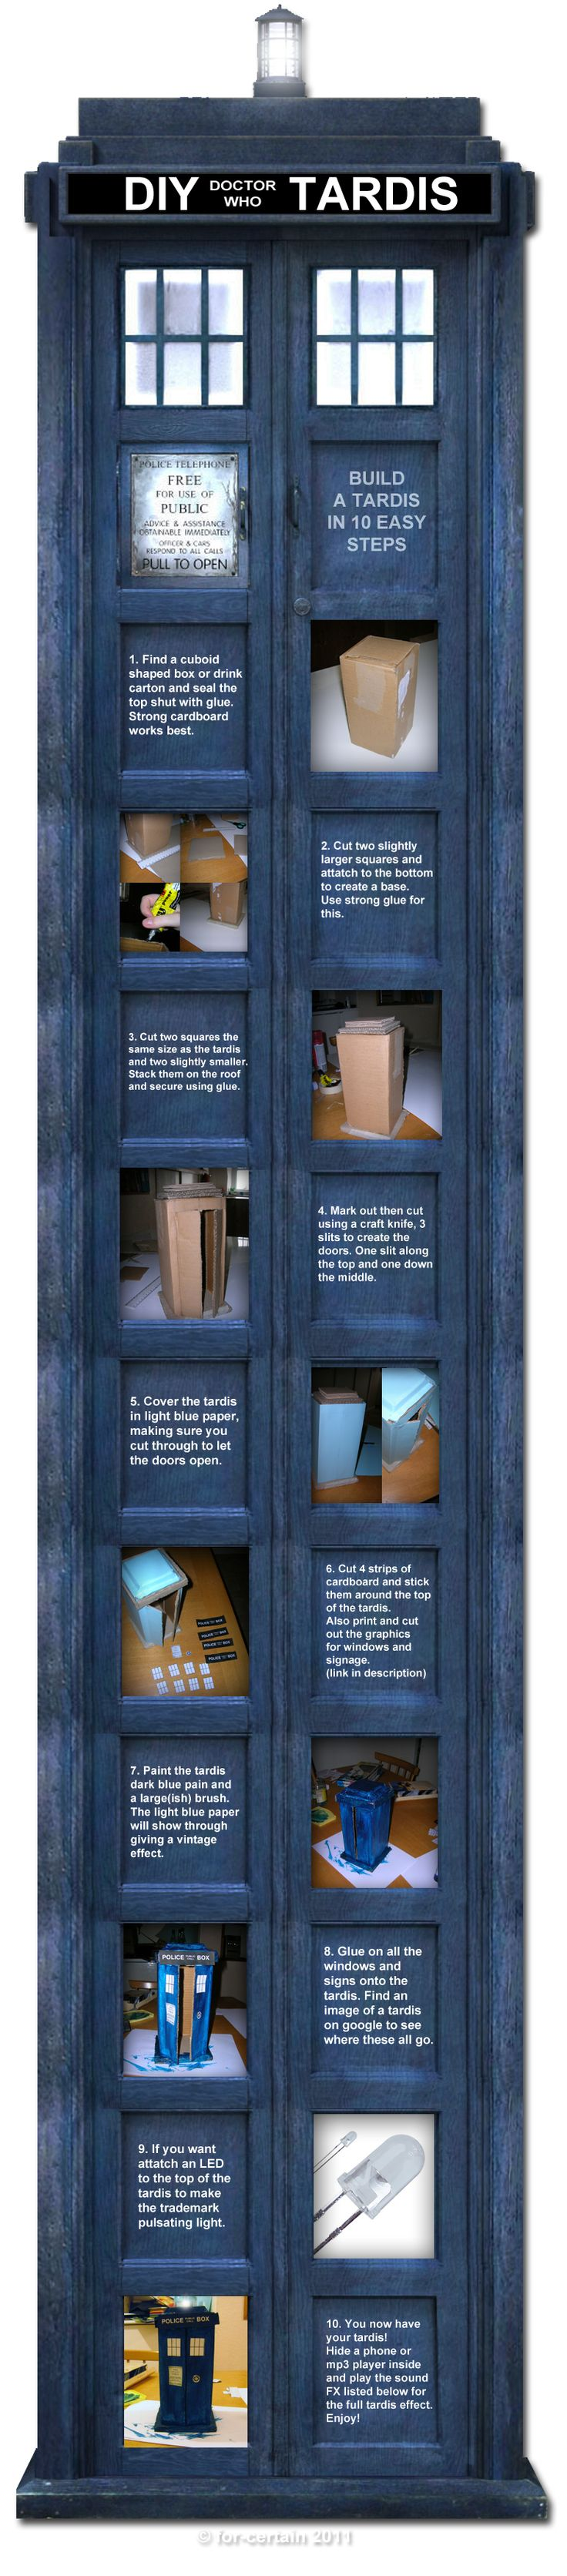 Whovian craft time!! This would be fun to make sometime when I actually HAVE time. (I think I need a TARDIS just to be able to make a TARDIS...)